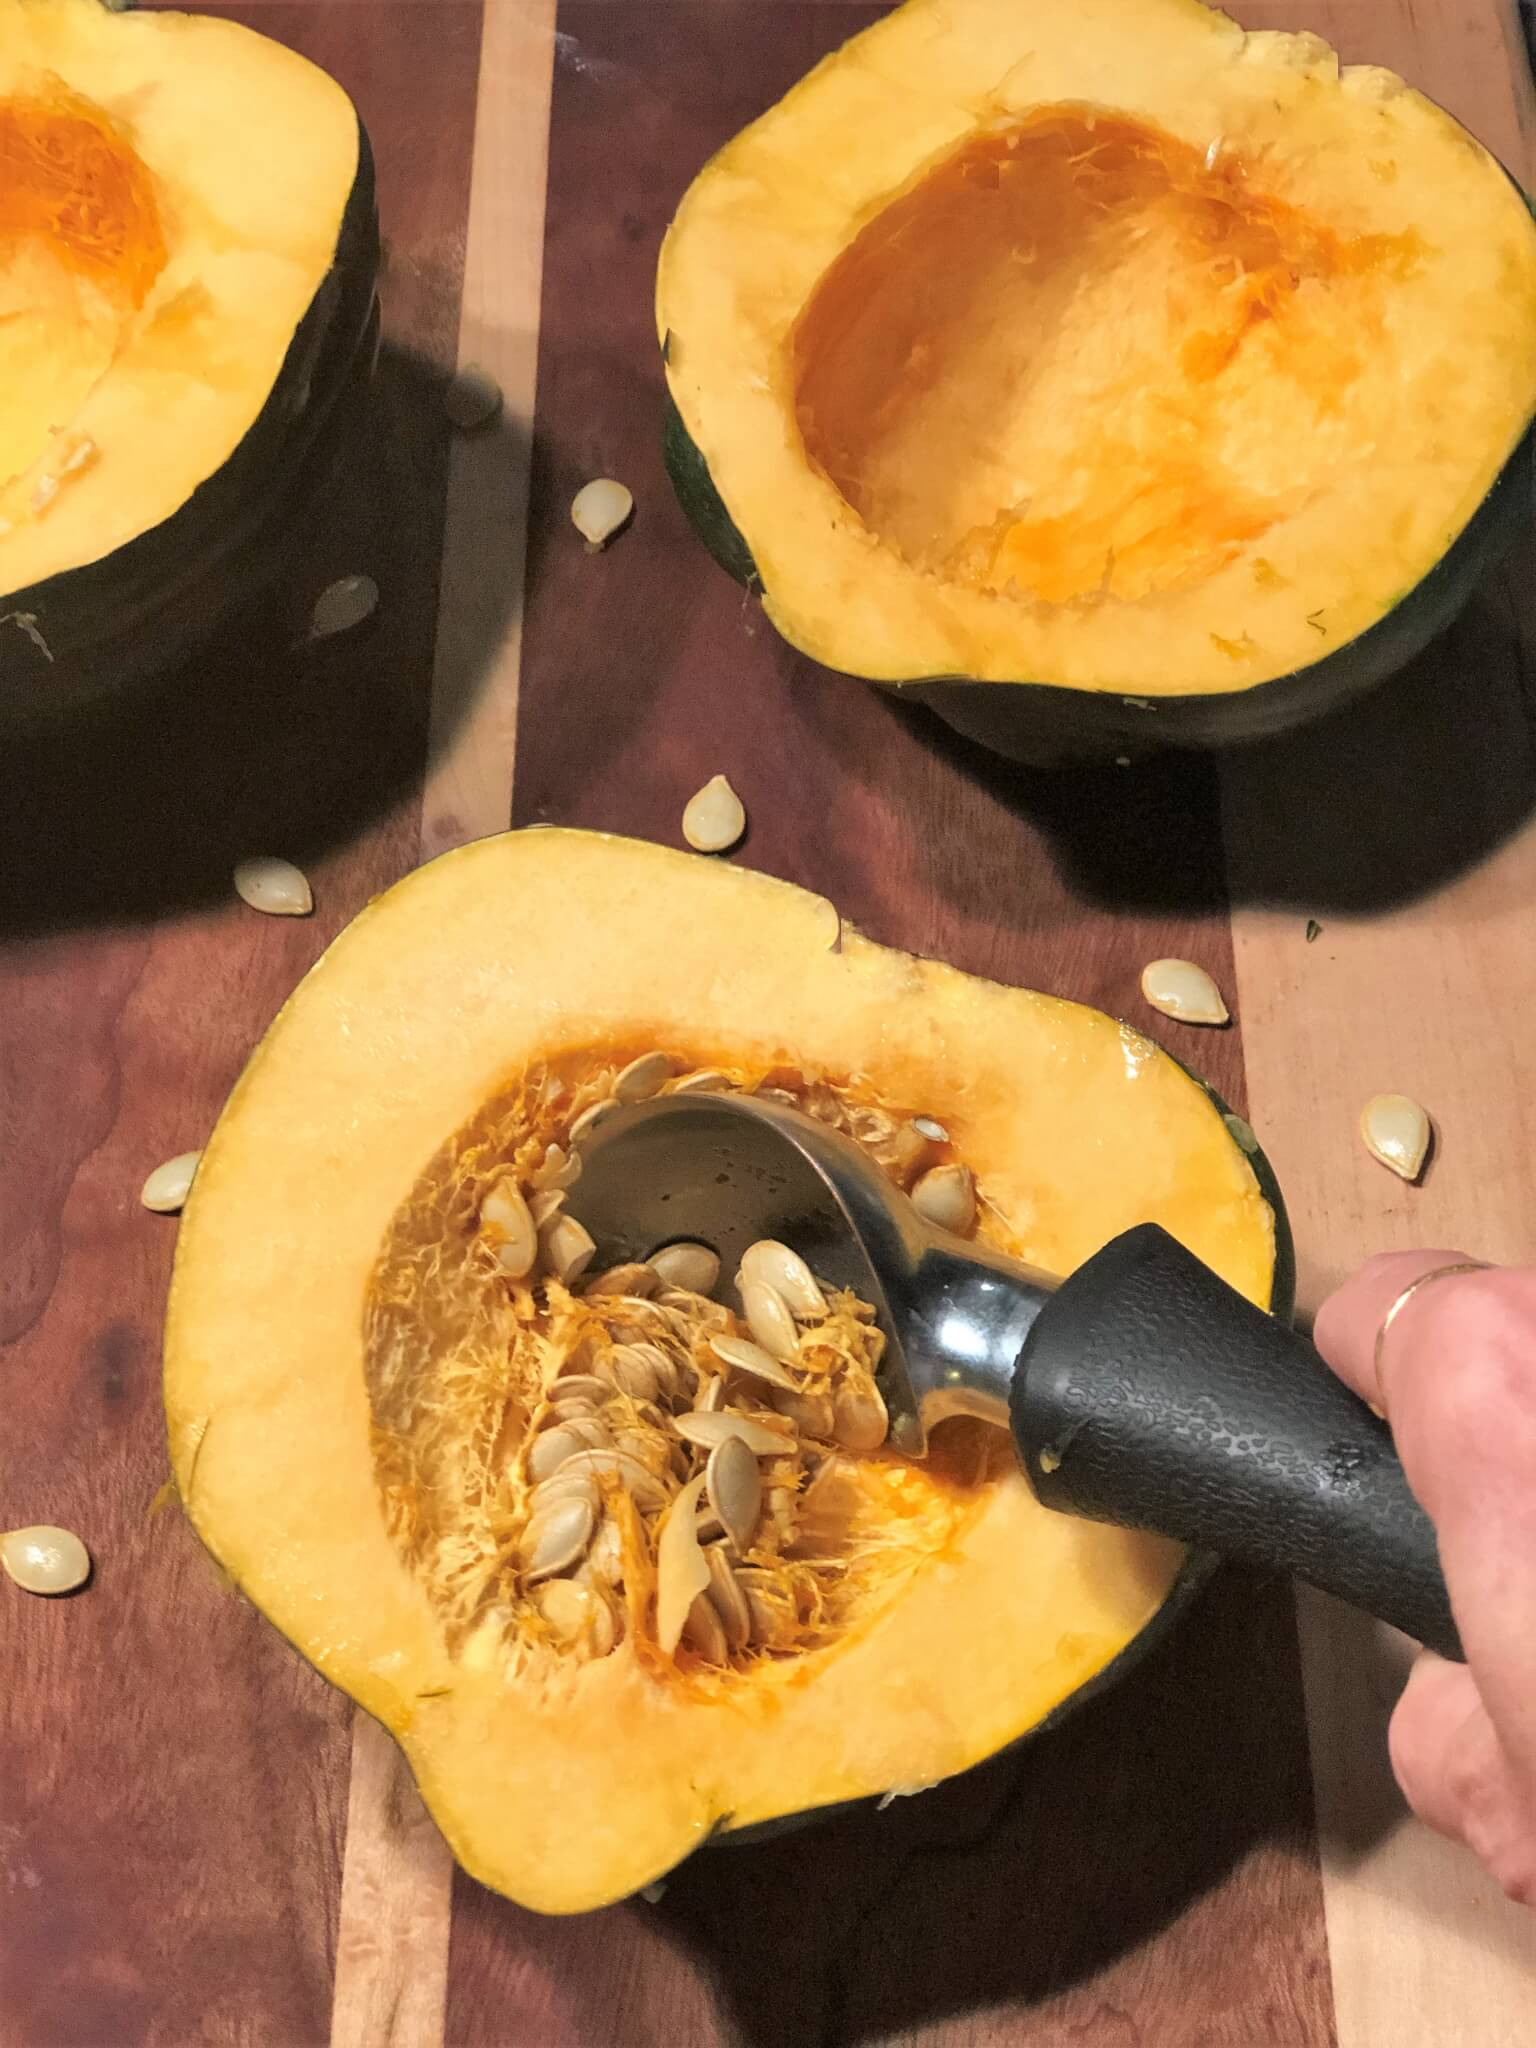 Scooping seeds from acorn squash to make stuffed acorn squash